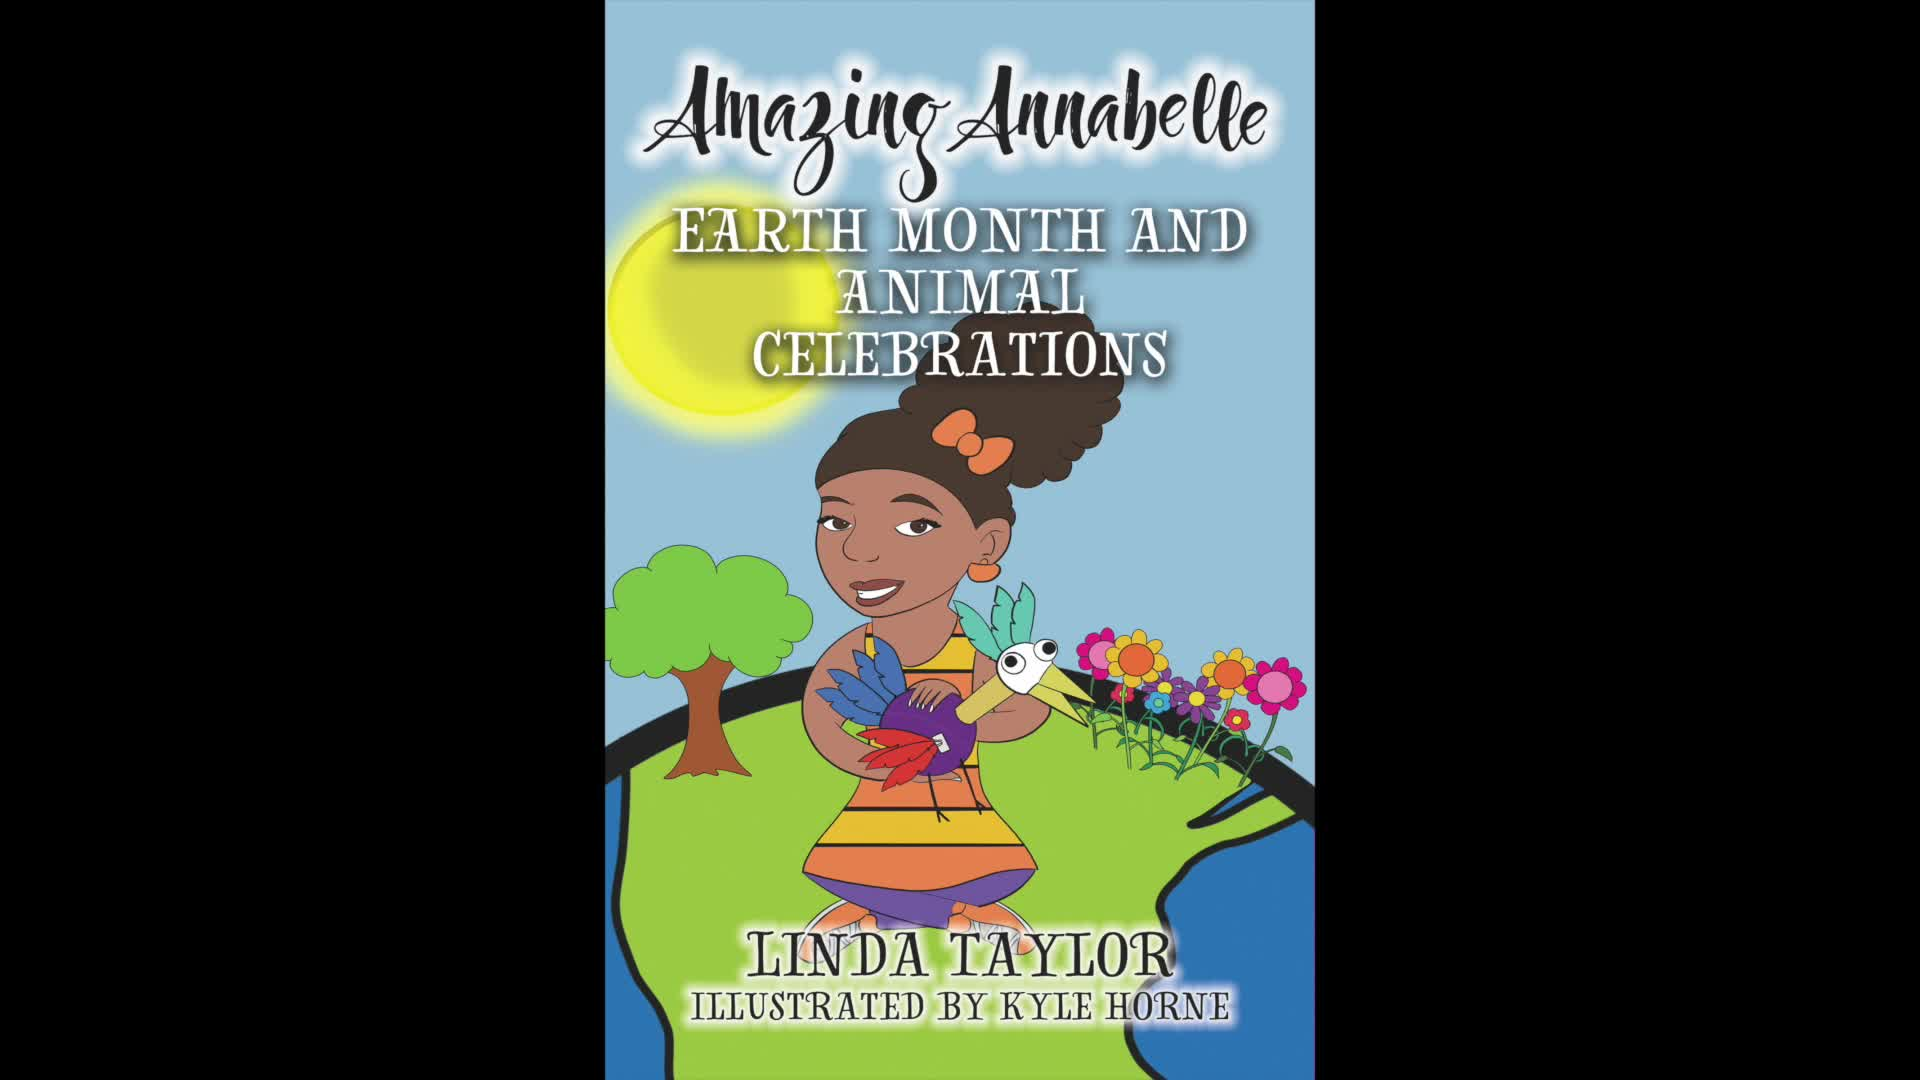 Amazing Annabelle Earth Month And Animal Celebrations Chapter 9